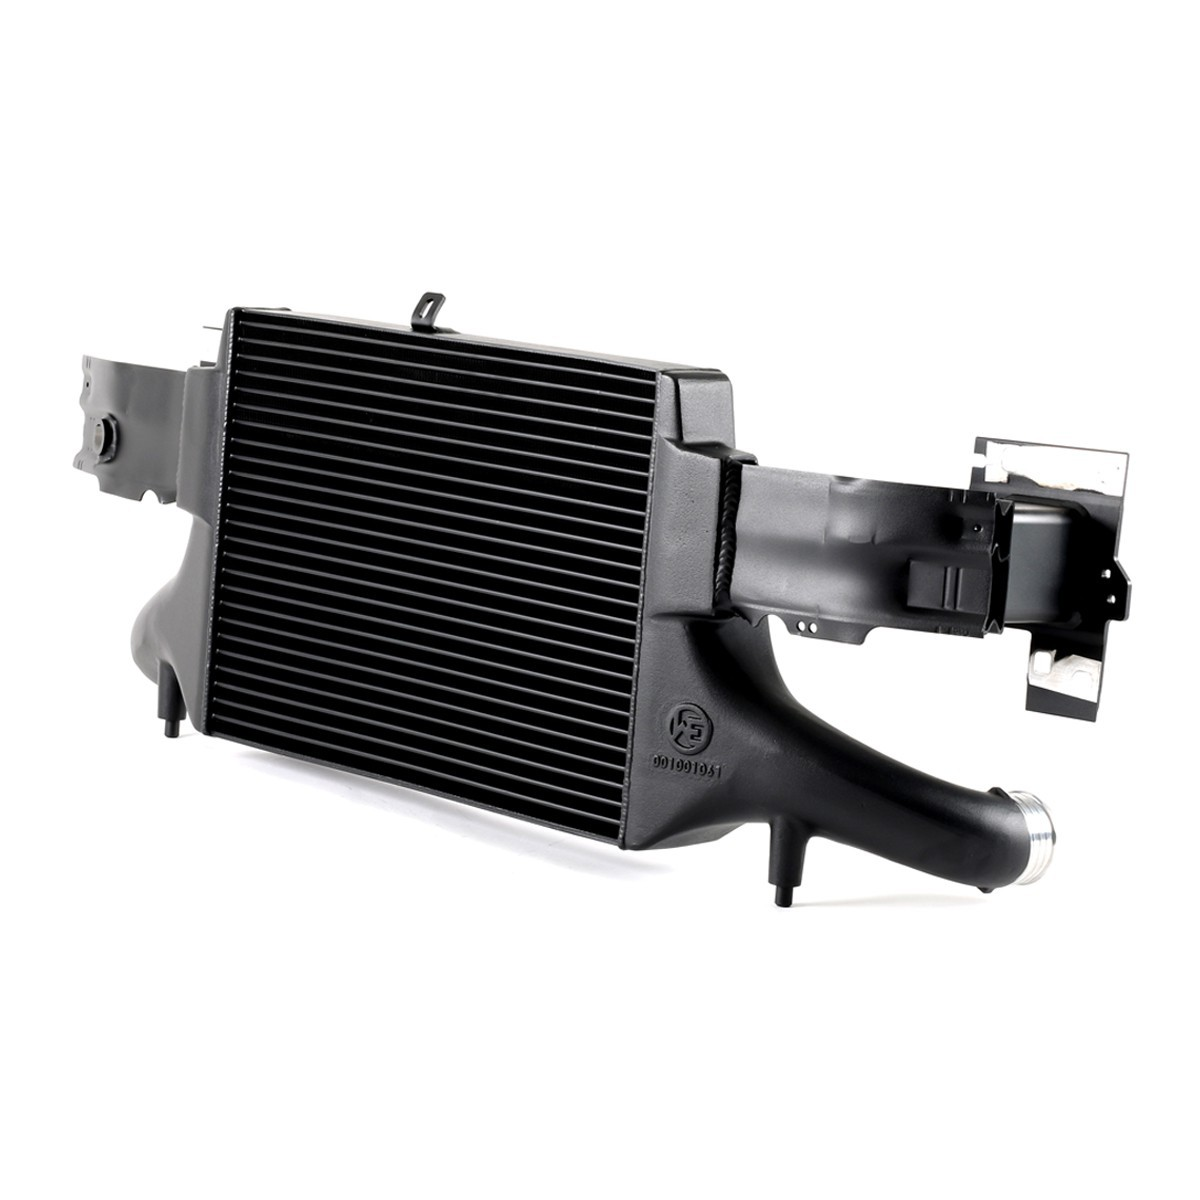 Wagner Tuning Intercooler Kit, 8S Audi TTRS EVO 3 Competition Intercooler    WAG-200001136